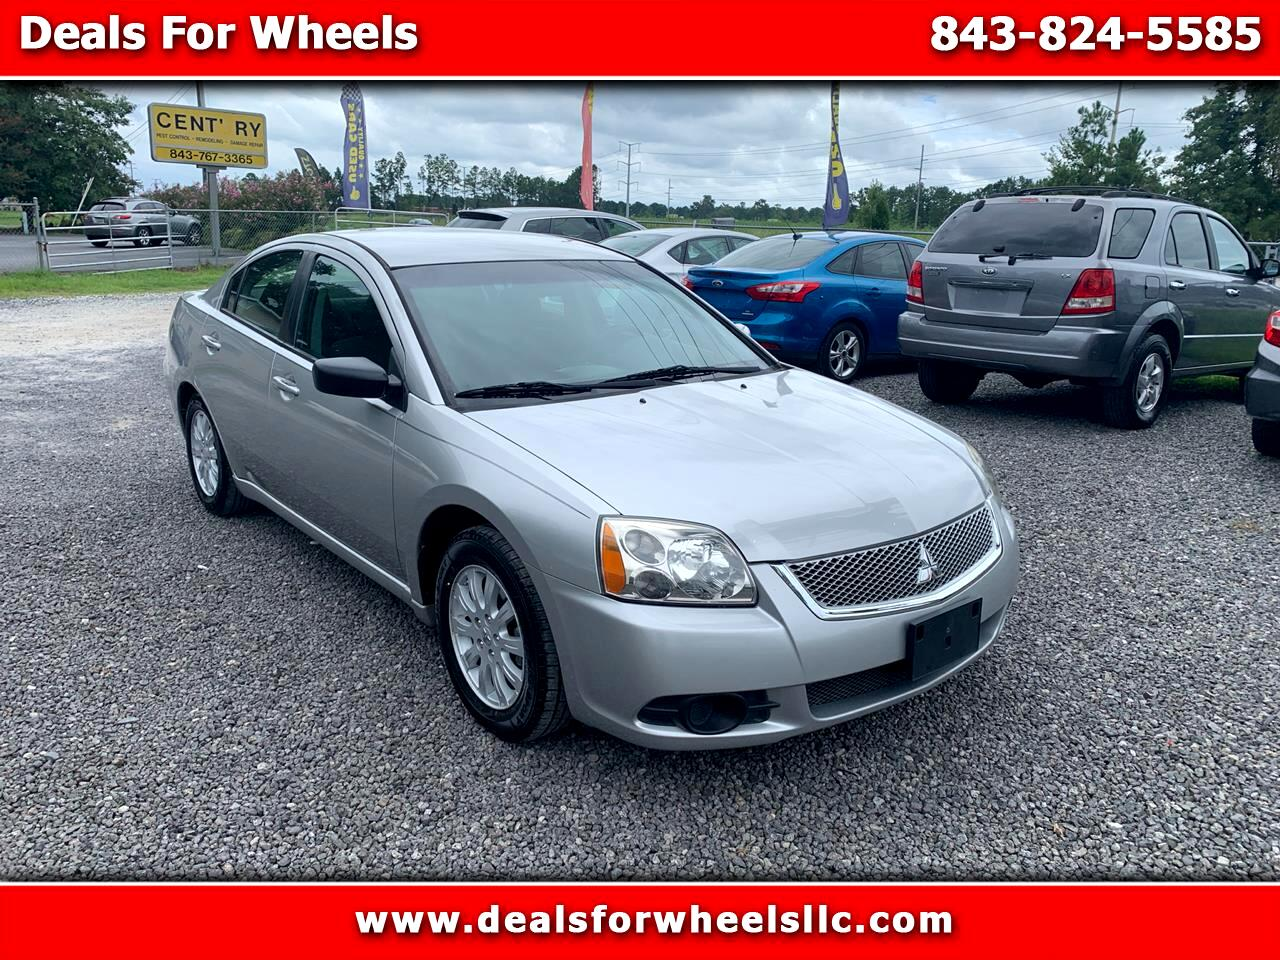 Used 2012 Mitsubishi Galant FE for Sale in Ladson SC 29456